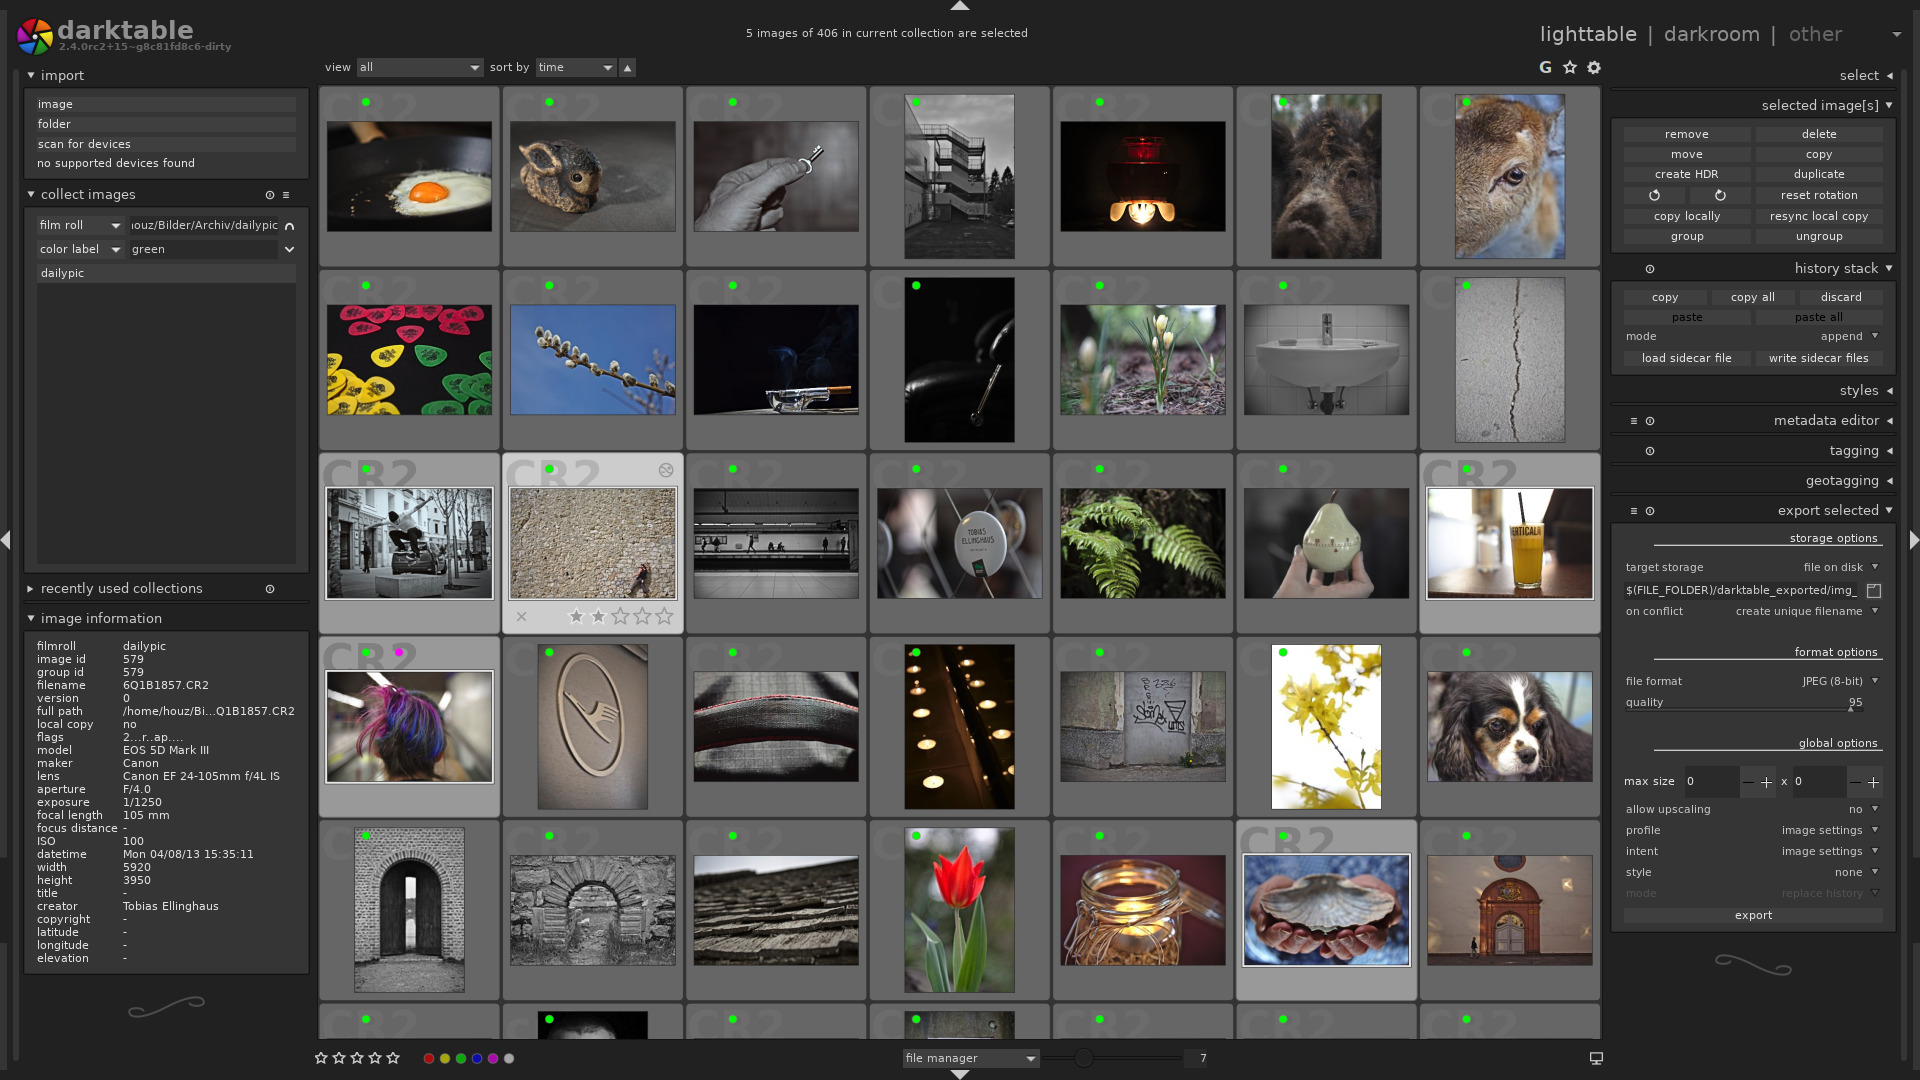 Darktable 2 6 0 update brings new retouch, color balance